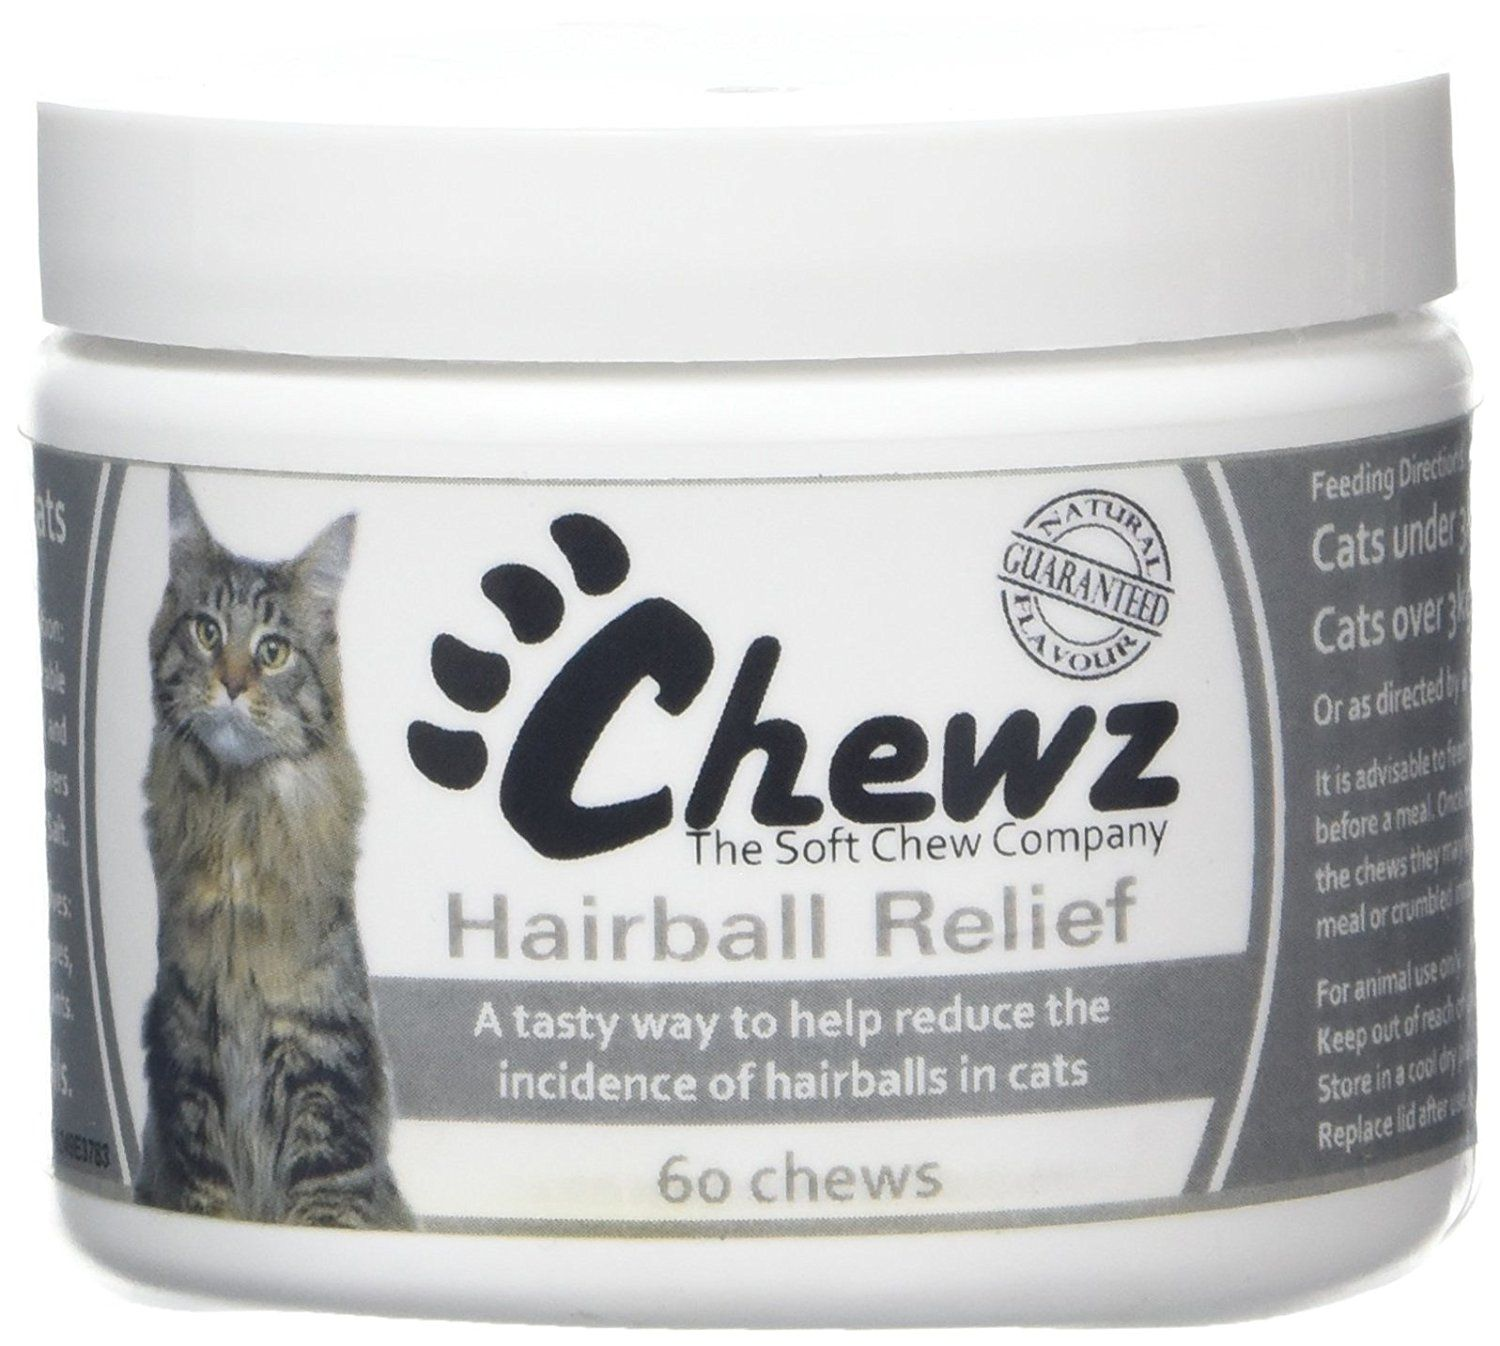 Chewz Hairball Relief For Cats 60 Be Sure To Check Out This Helpful Article Catstuff Hairball Cat Store Cat Treats